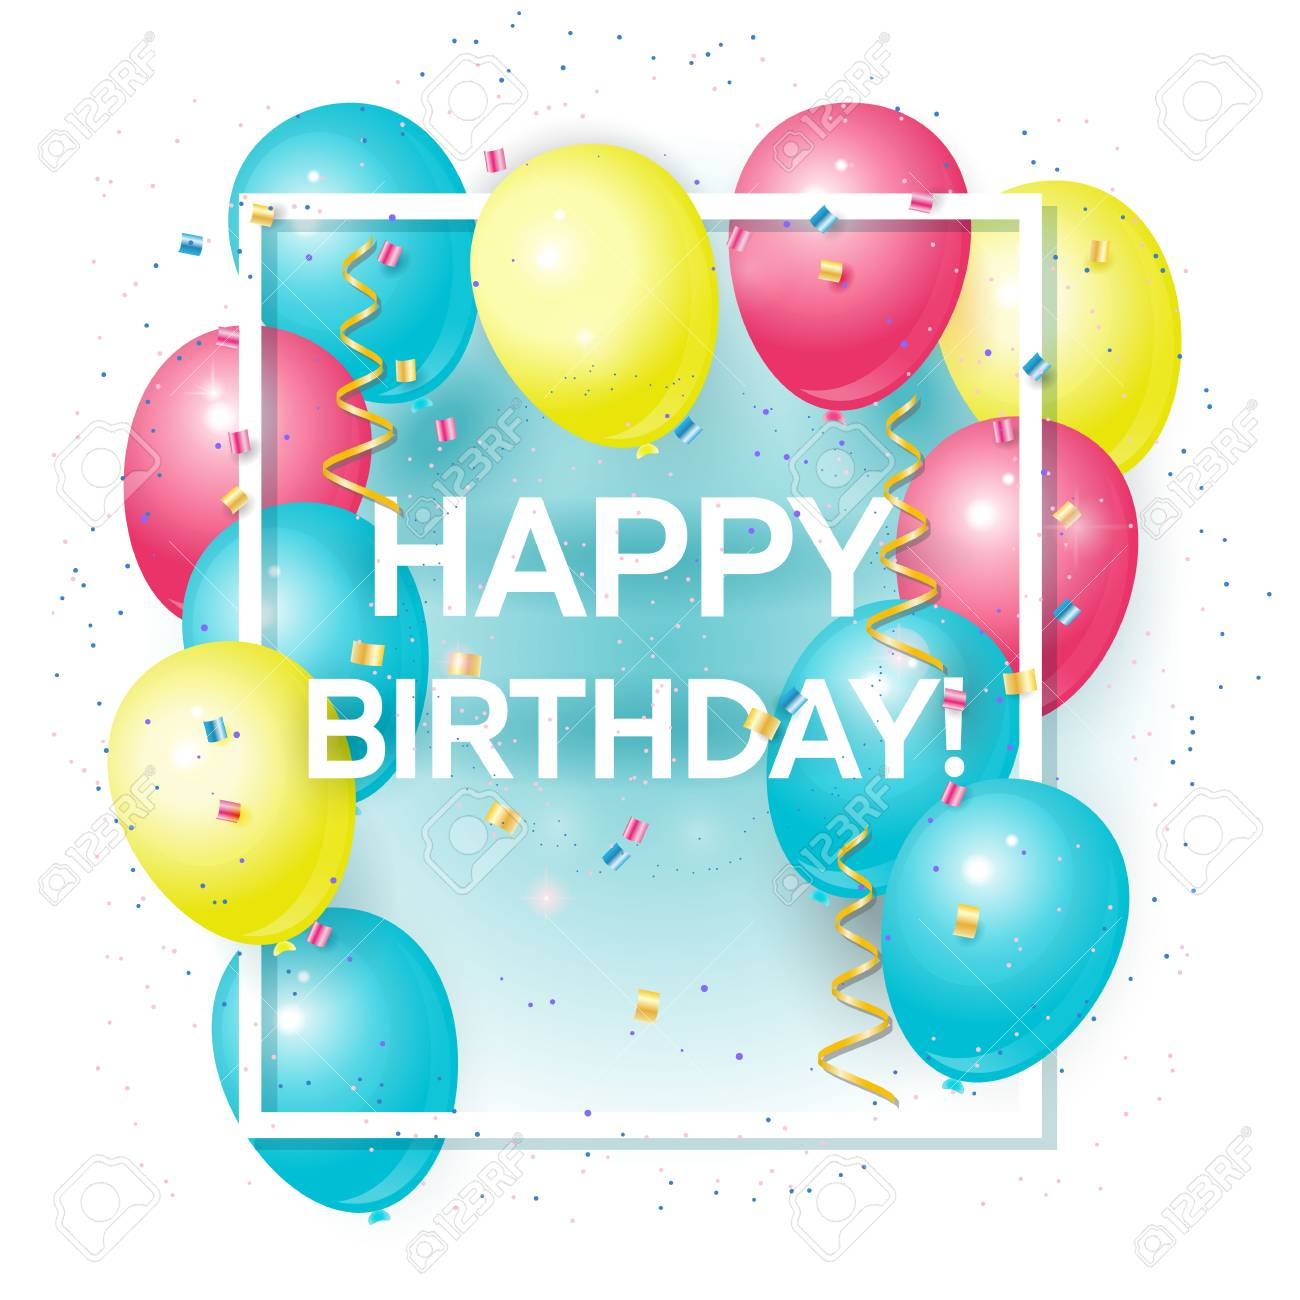 Happy birthday greeting card with volume colored balloons and happy birthday greeting card with volume colored balloons and sample text can be used as m4hsunfo